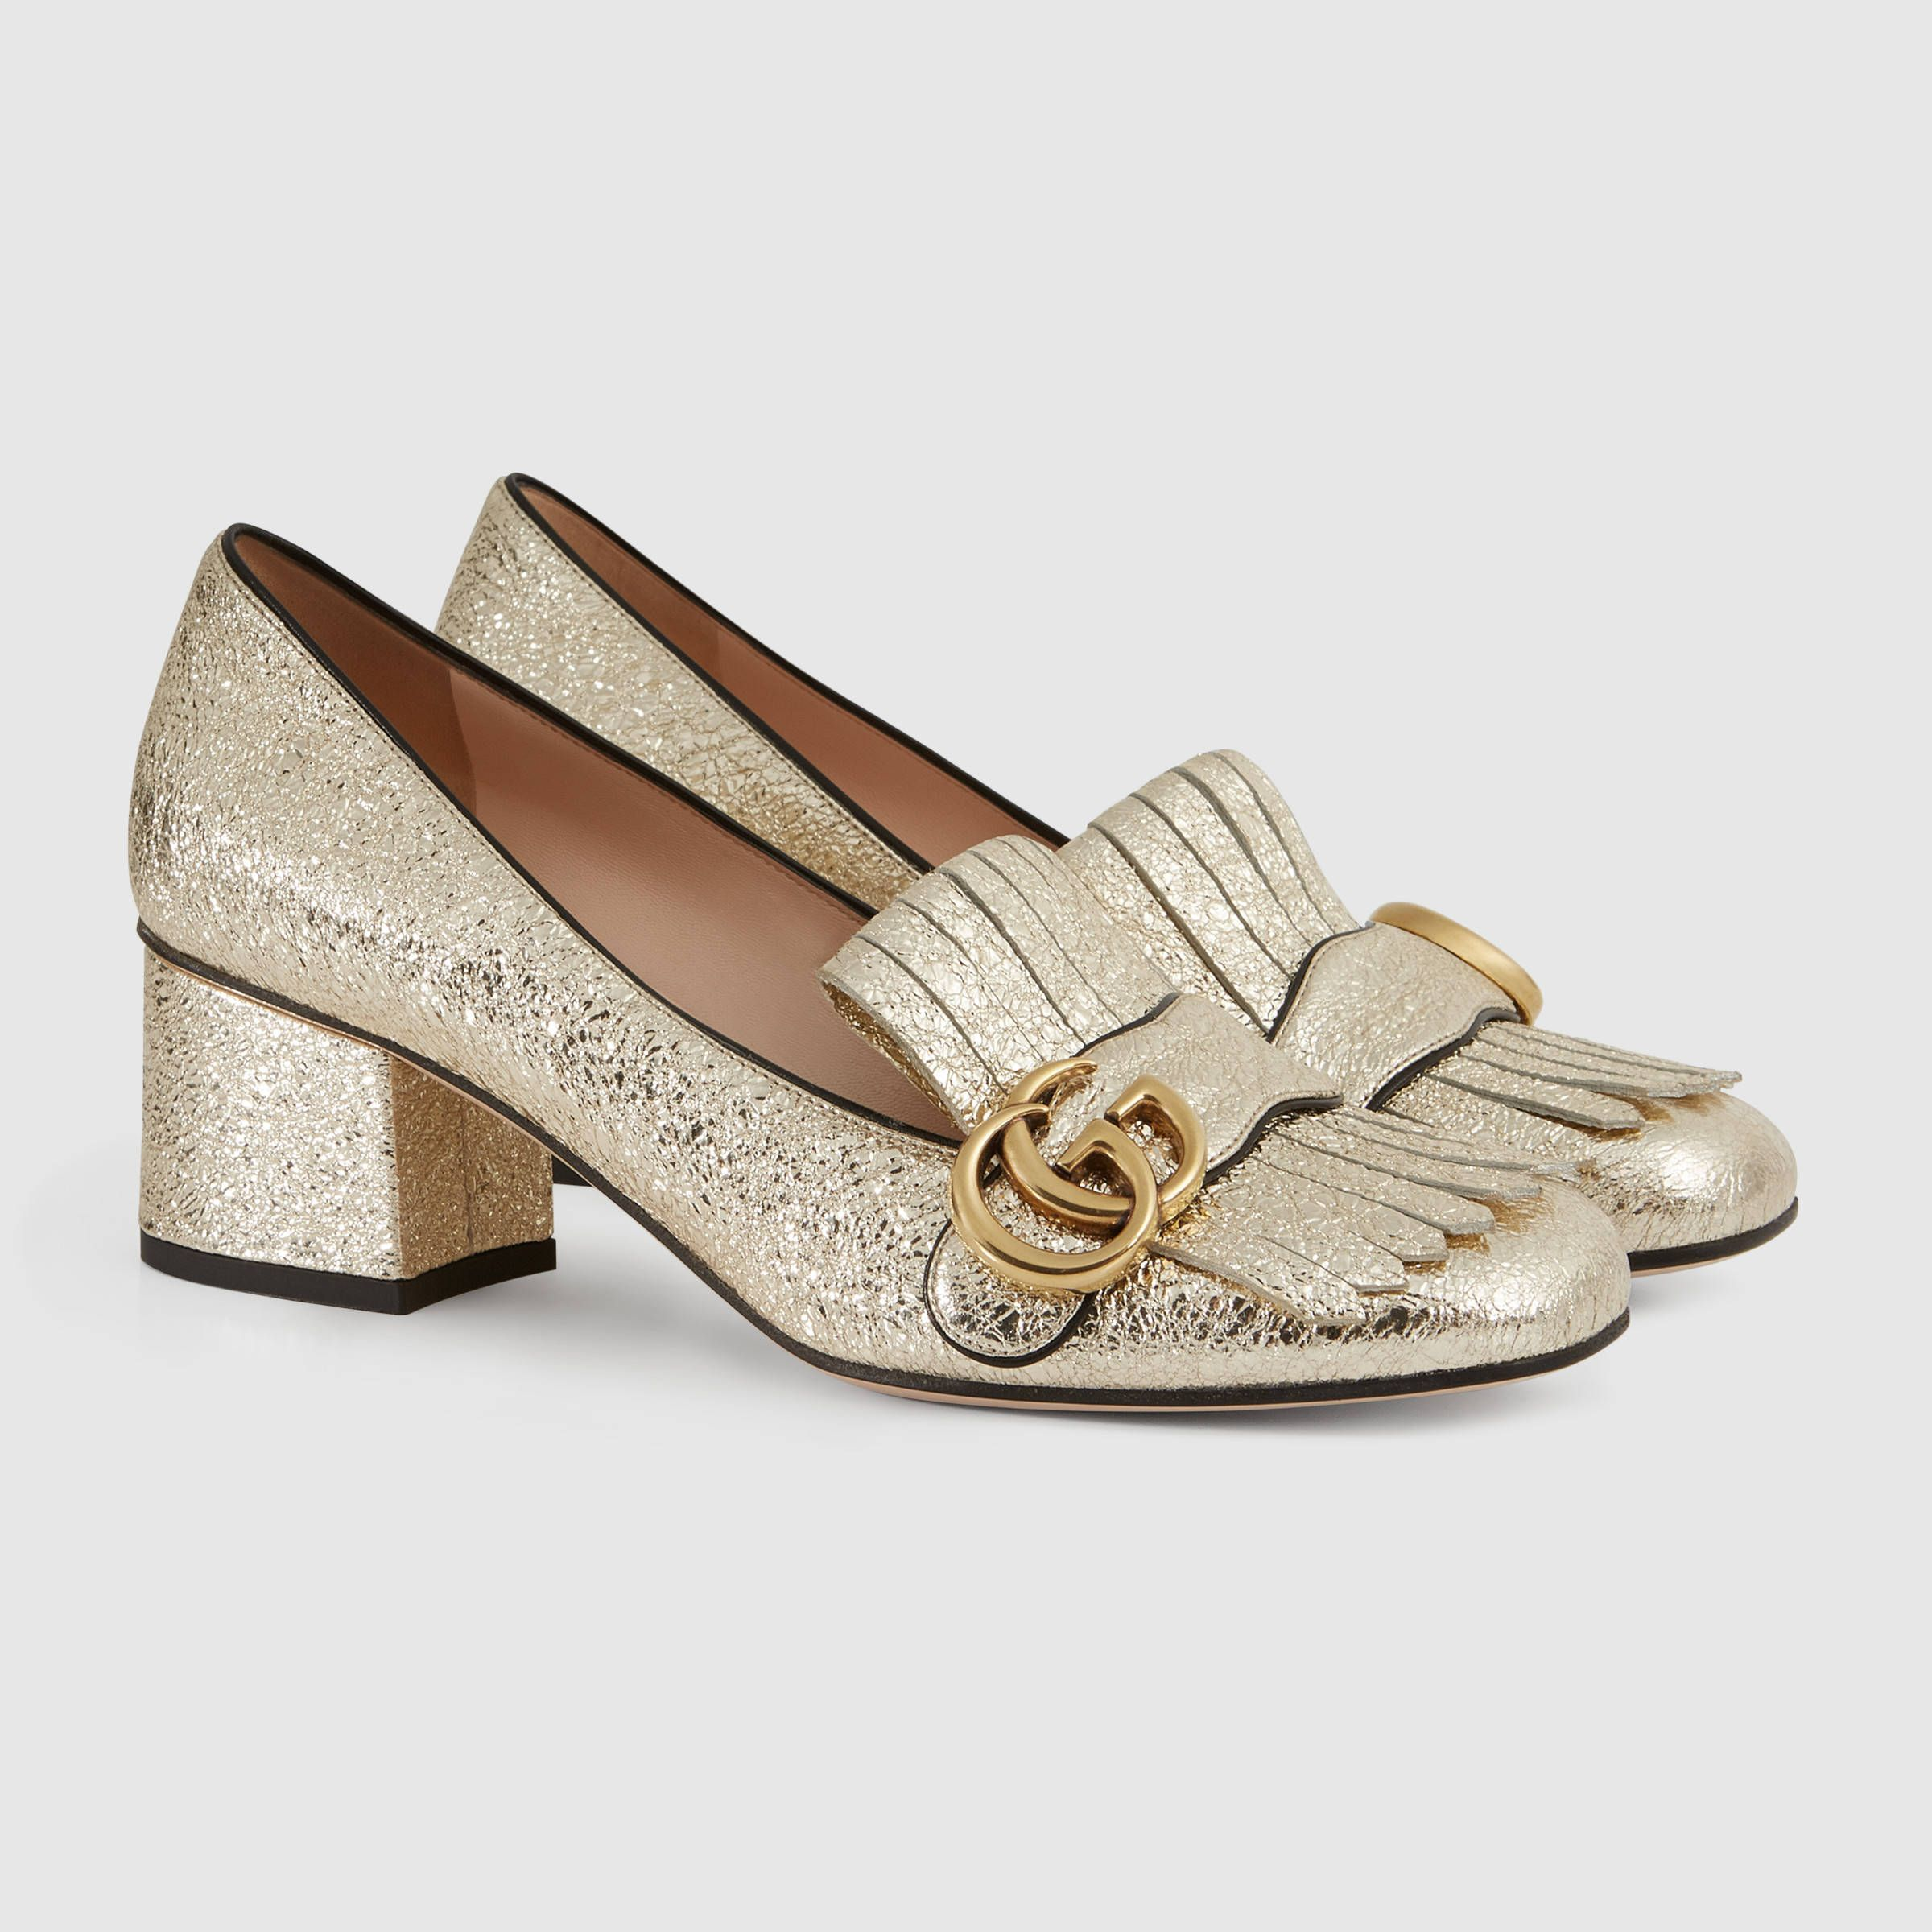 809a91fe4dc Gucci Women - Metallic mid-heel pump - 408208DKT007100